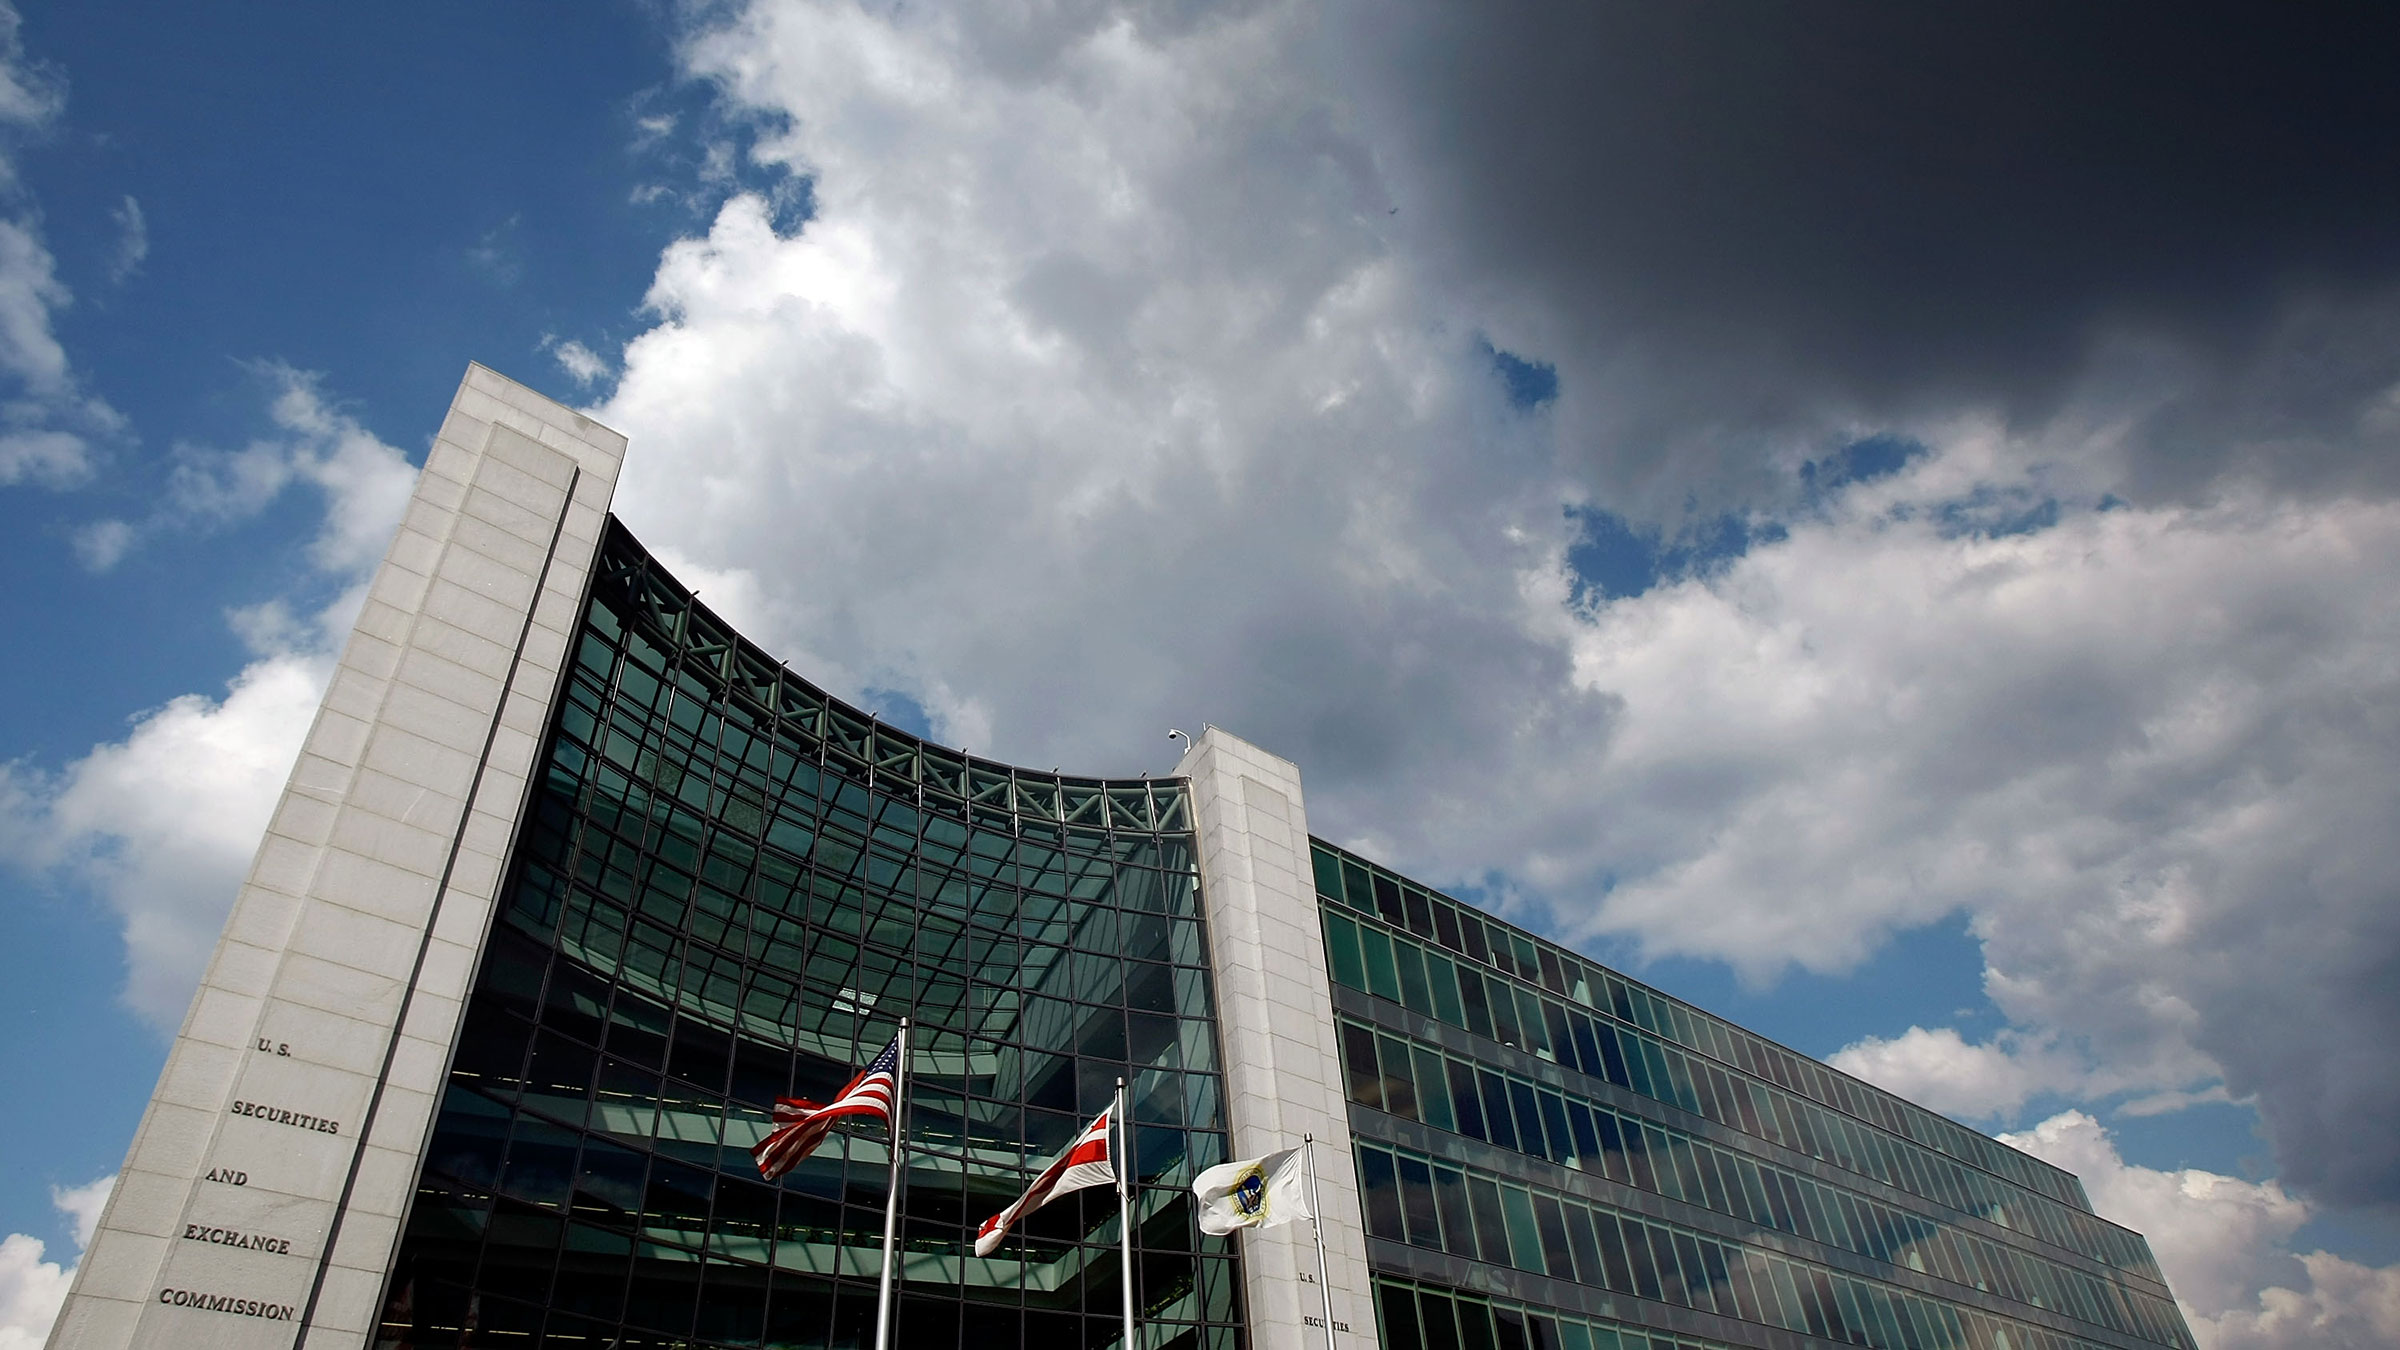 Clouds over the US Securities and Exchange Commission building